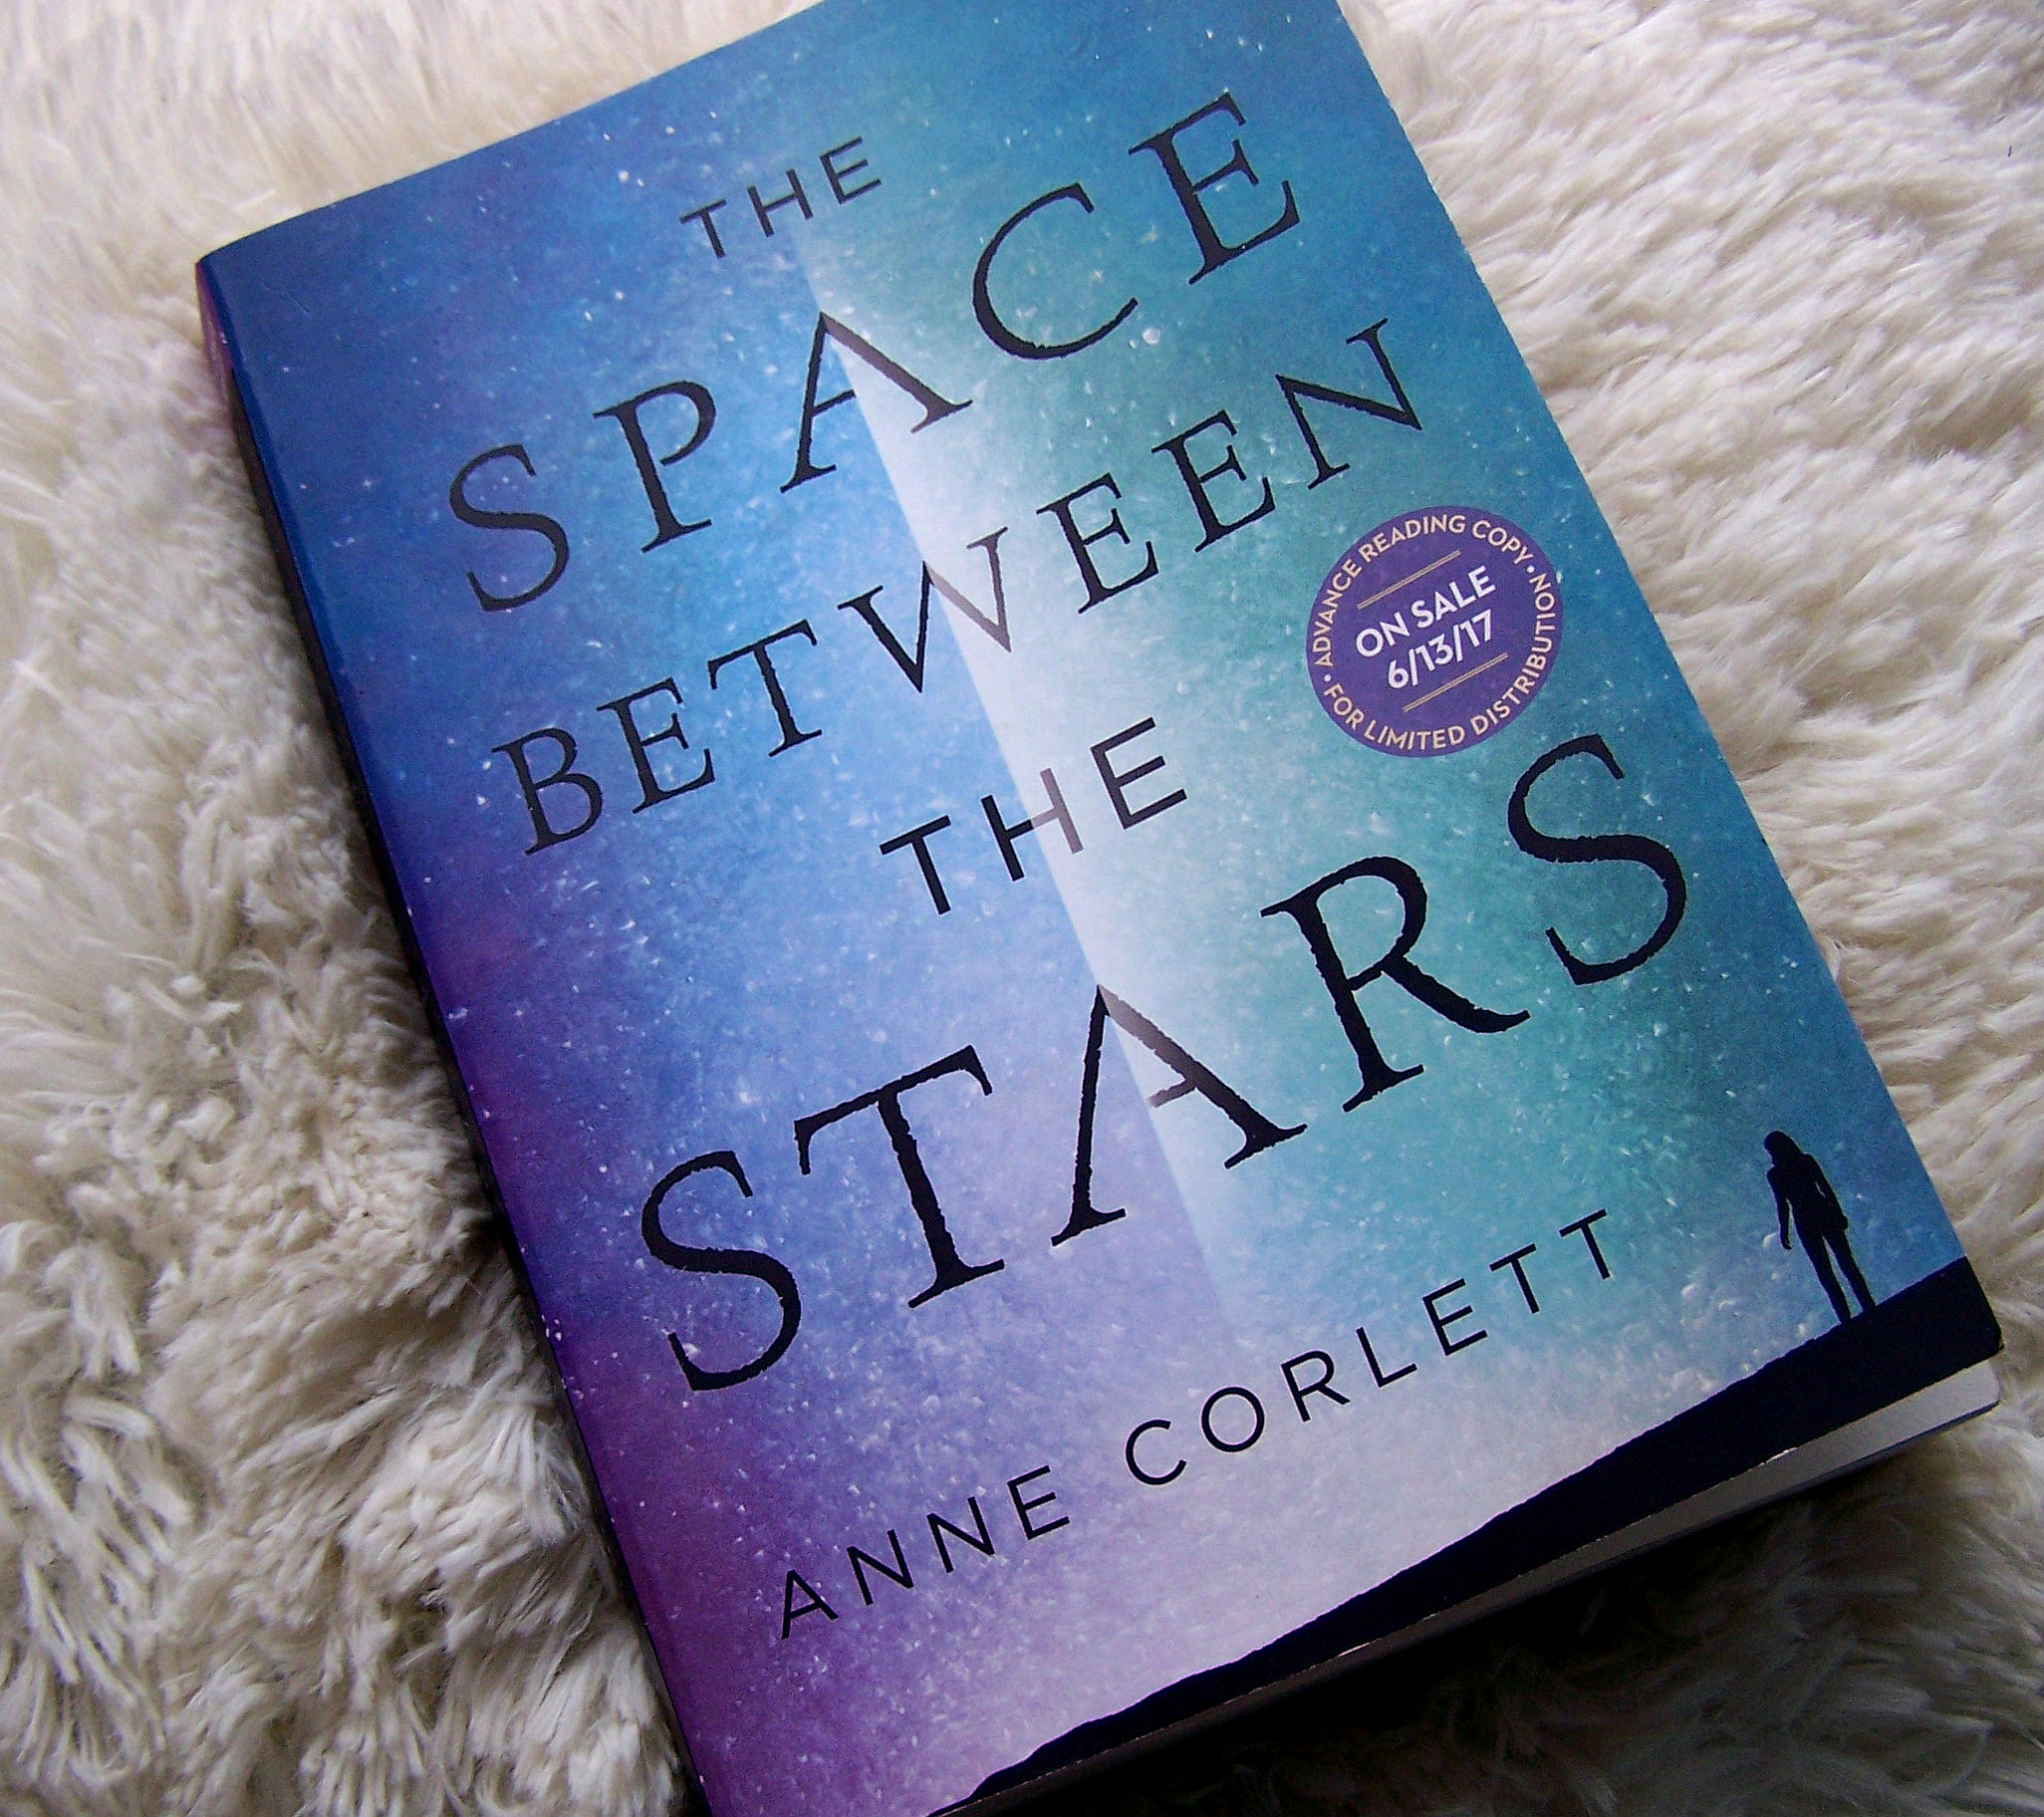 reviews, books, book bloggers, stars, space, space travel, future, apocalypse, YA, novels, fiction, science fiction, science, tech, technology, plague, reading the space between the stars